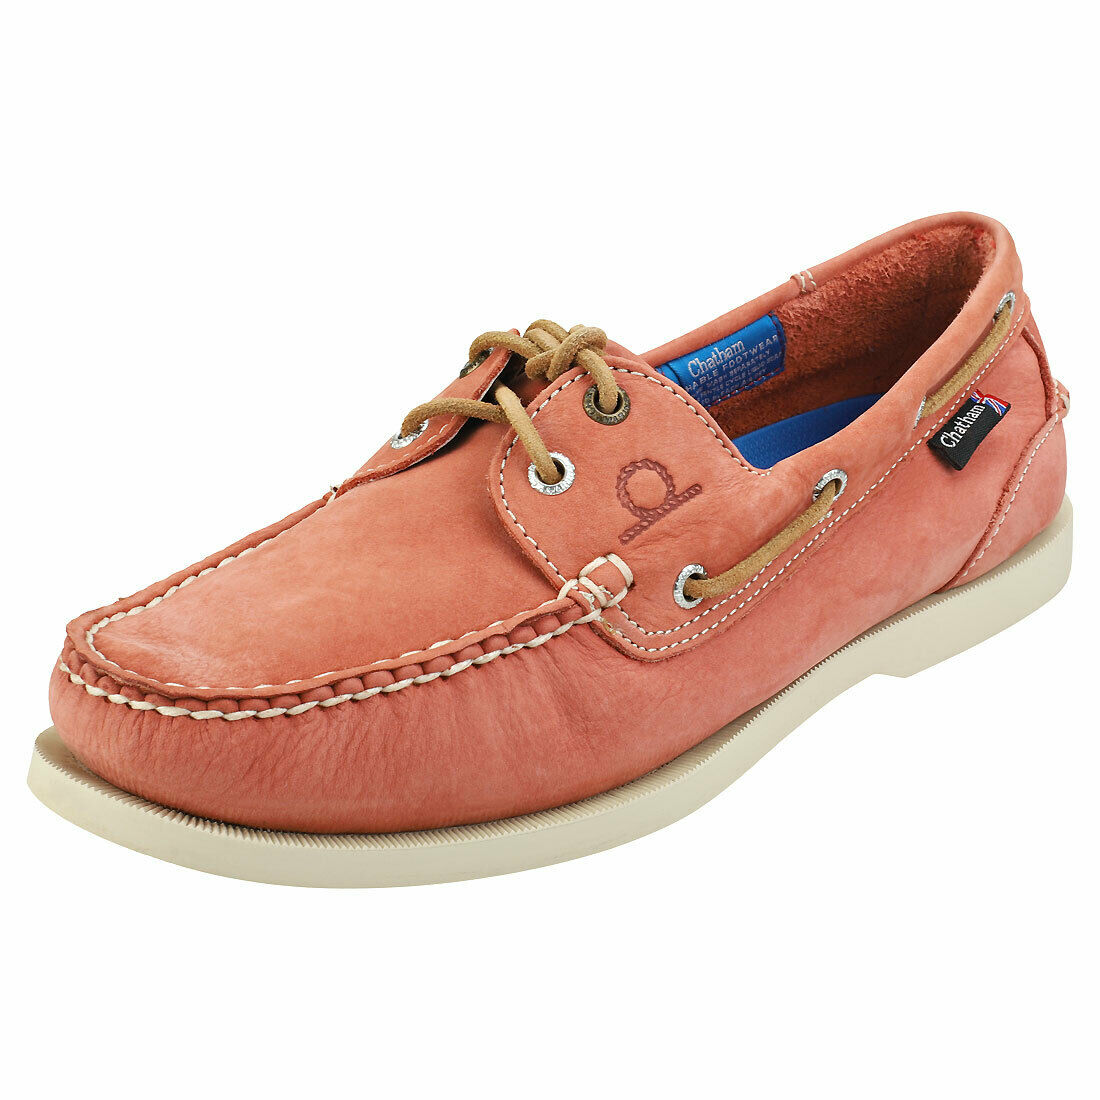 Chatham Compass 2 G2 Mens Terracotta Leather Boat schuhe